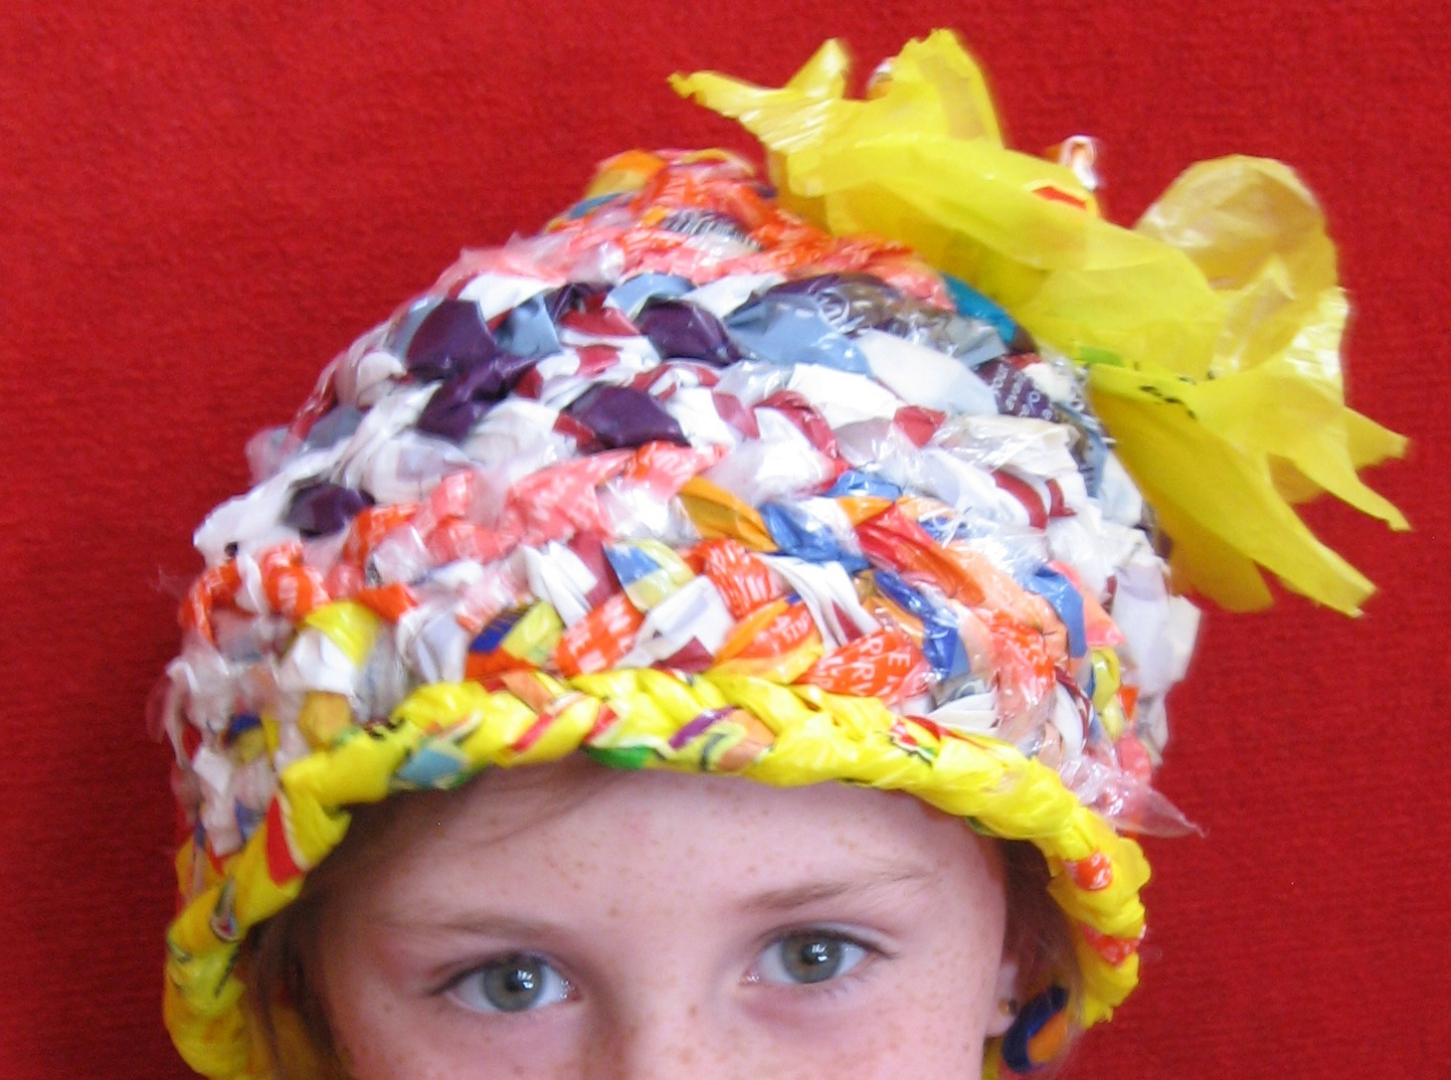 Plastic bag hat - 2016 wearable waste theme